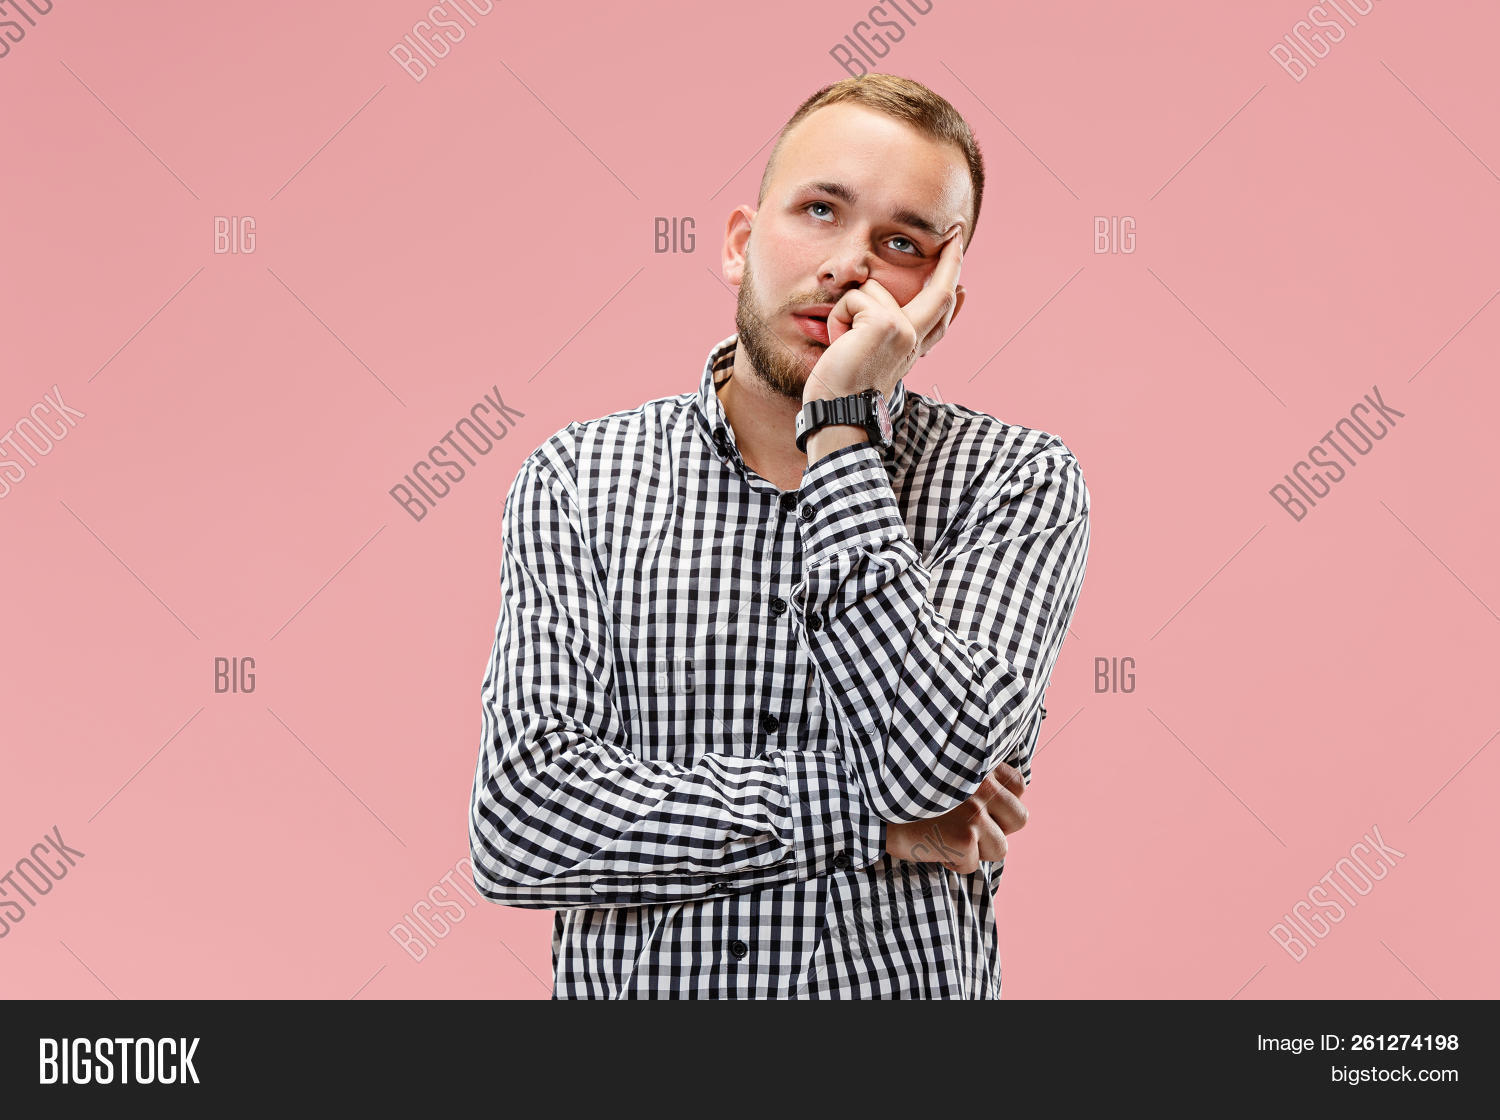 Boring,adult,attractive,background,beautiful,beauty,bored,boredom,brunette,casual,caucasian,concept,dull,emotional,emotions,european,exhausted,expression,face,facial,guy,handsome,head,human,isolated,lazy,lifestyle,looking,male,man,men,model,morning,people,person,pink,portrait,sleepiness,sleepy,student,studio,tedious,thinking,tired,trendy,worker,yawn,young,youth